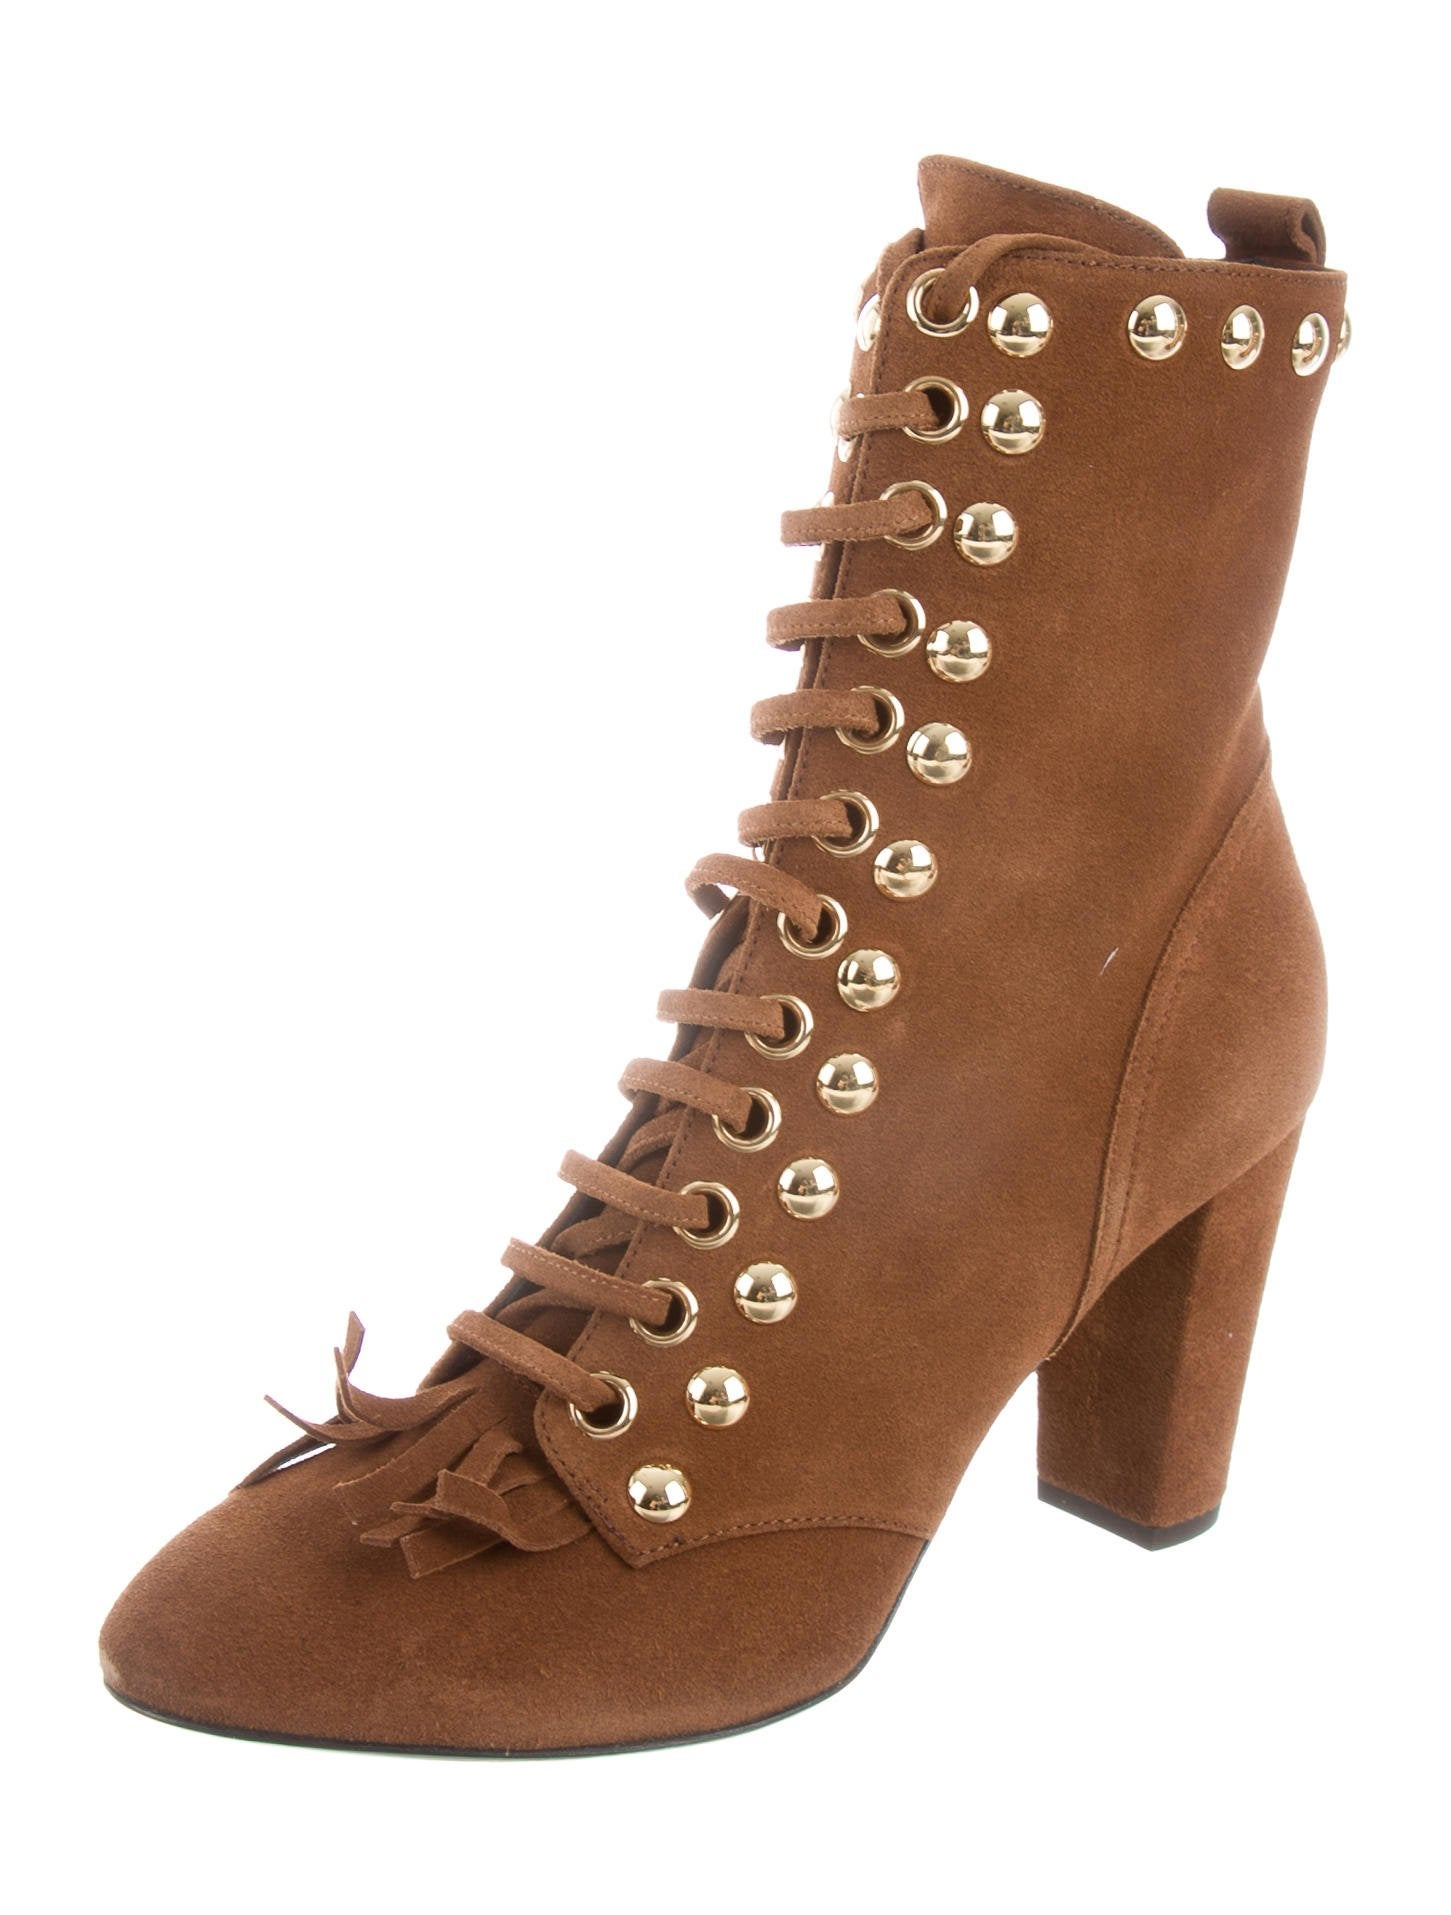 Giuseppe Zanotti Embellished Ankle Boots w/ Tags cheap footlocker pictures buy cheap affordable cheap sale nicekicks hUo3Ql